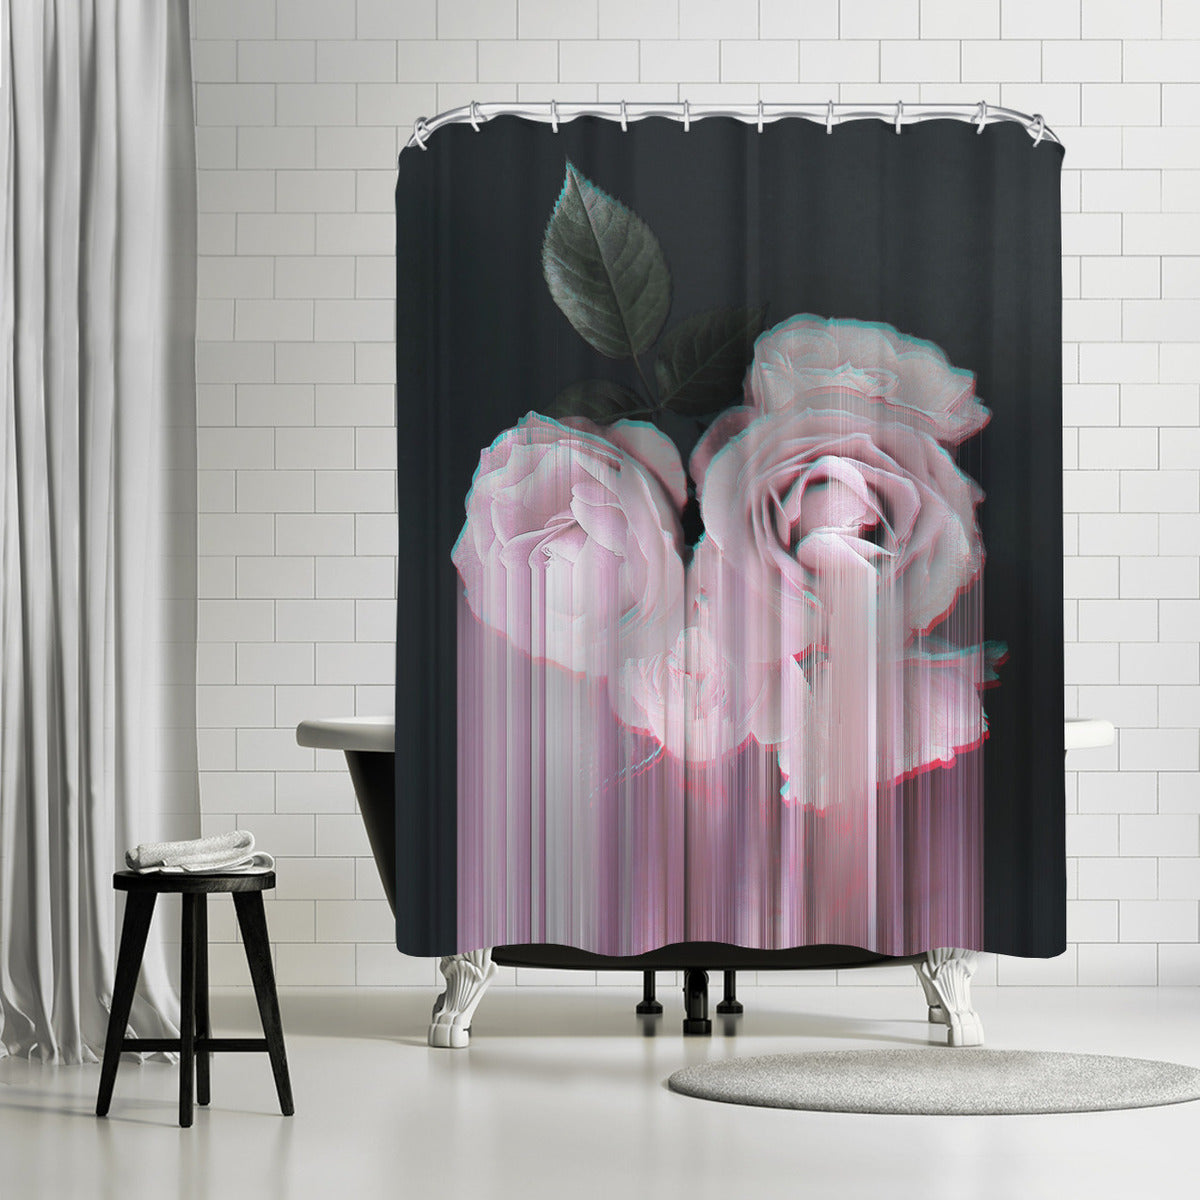 Fall In Rose by Emanuela Carratoni Shower Curtain - Shower Curtain - Americanflat